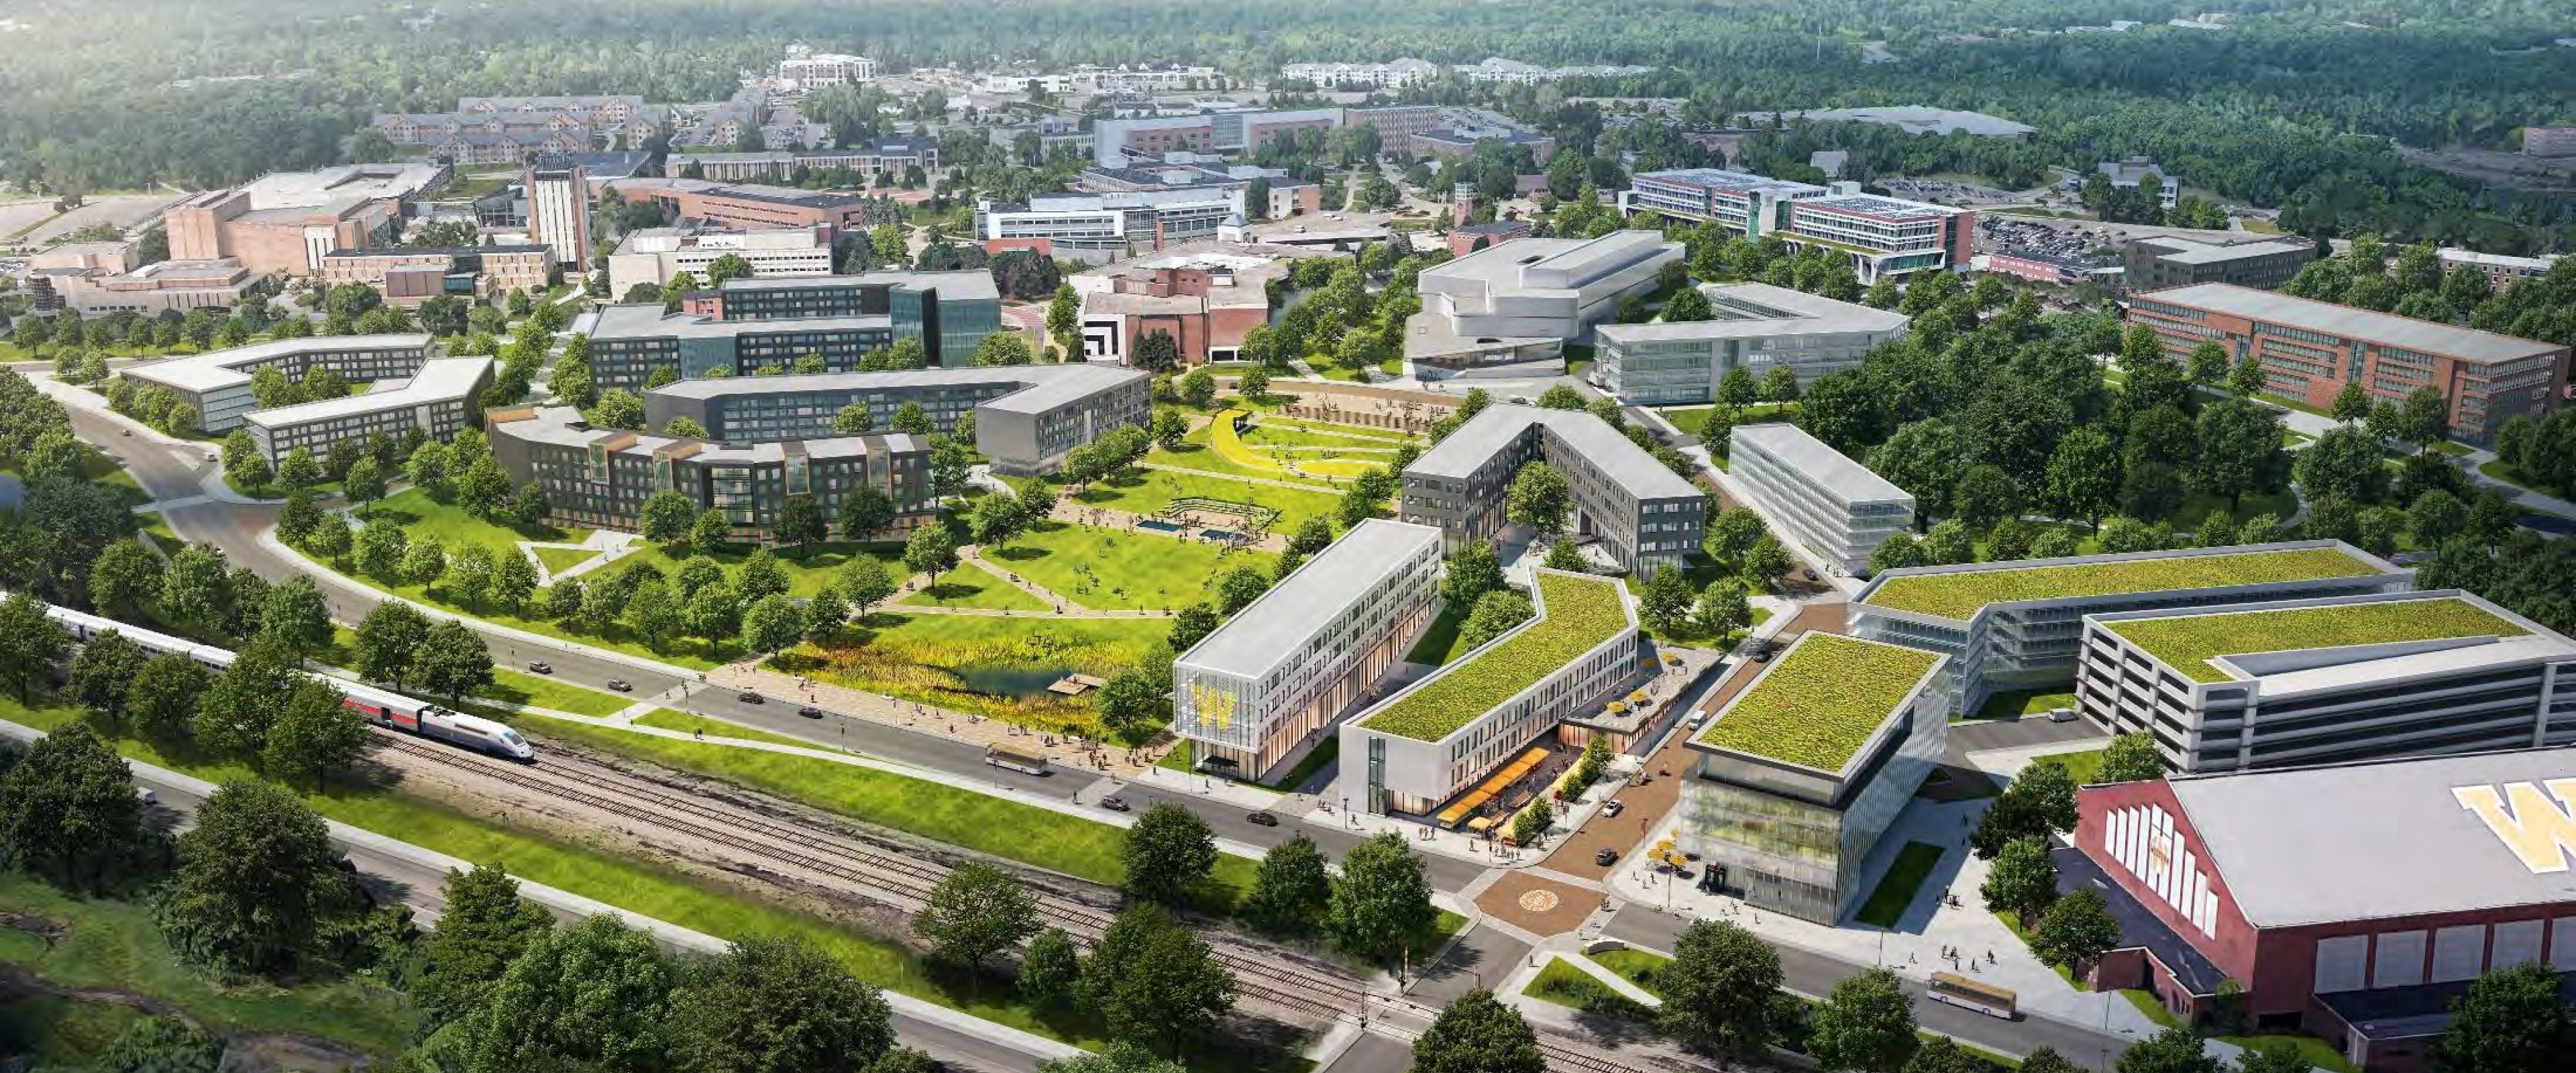 An aerial rendering of the new buildings and green spaces that will comprise the Hilltop Village